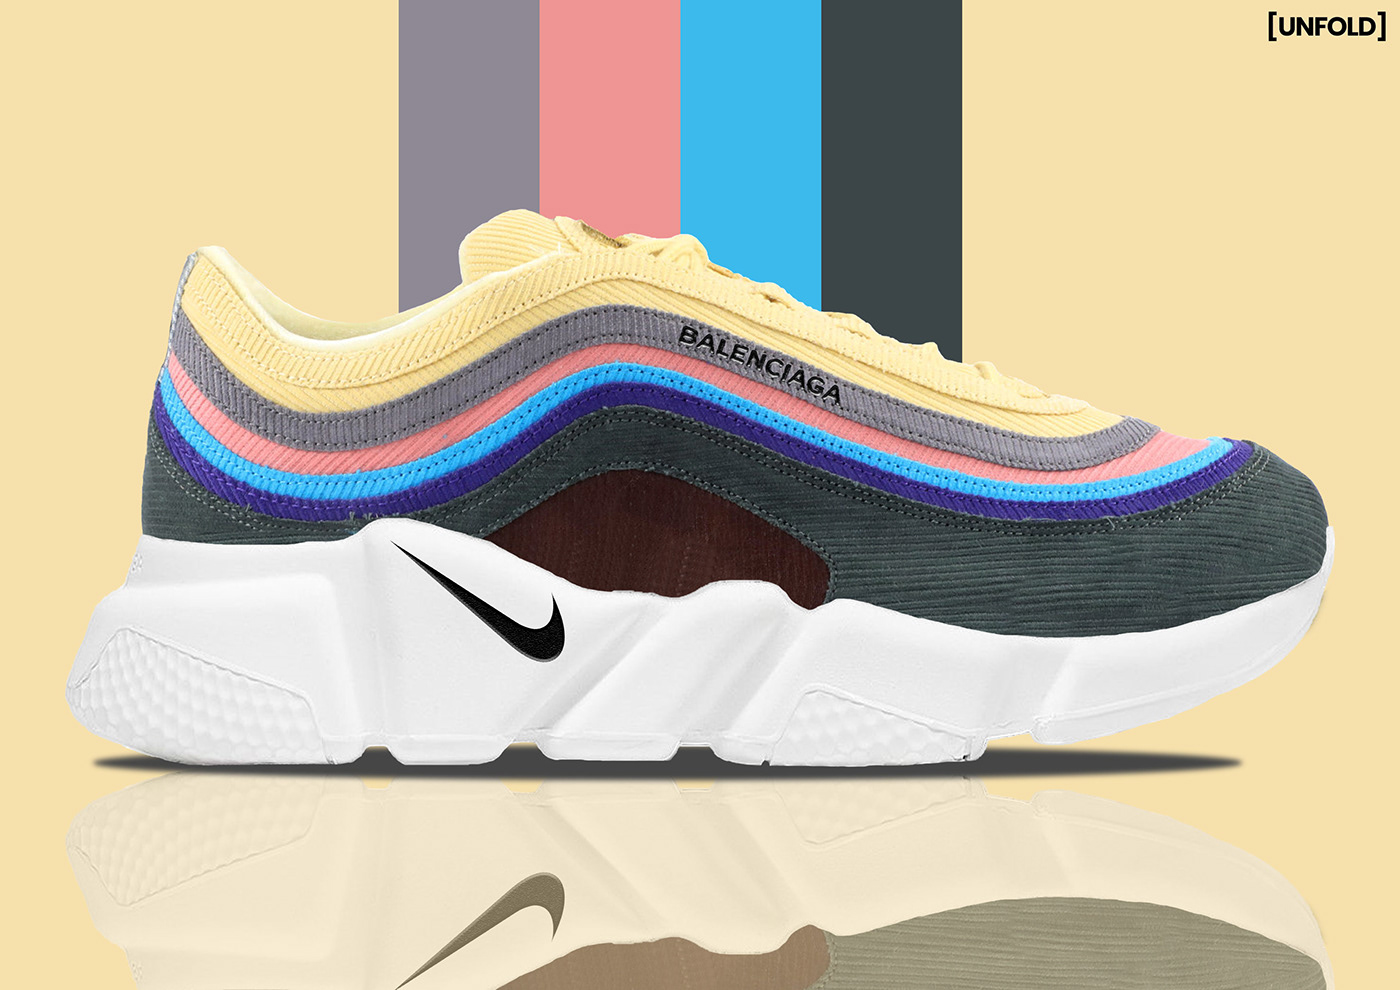 Speed Behance Balenciaga X Nike Wotherspoon 197 On Max Sean Air 6g7vIYbfy